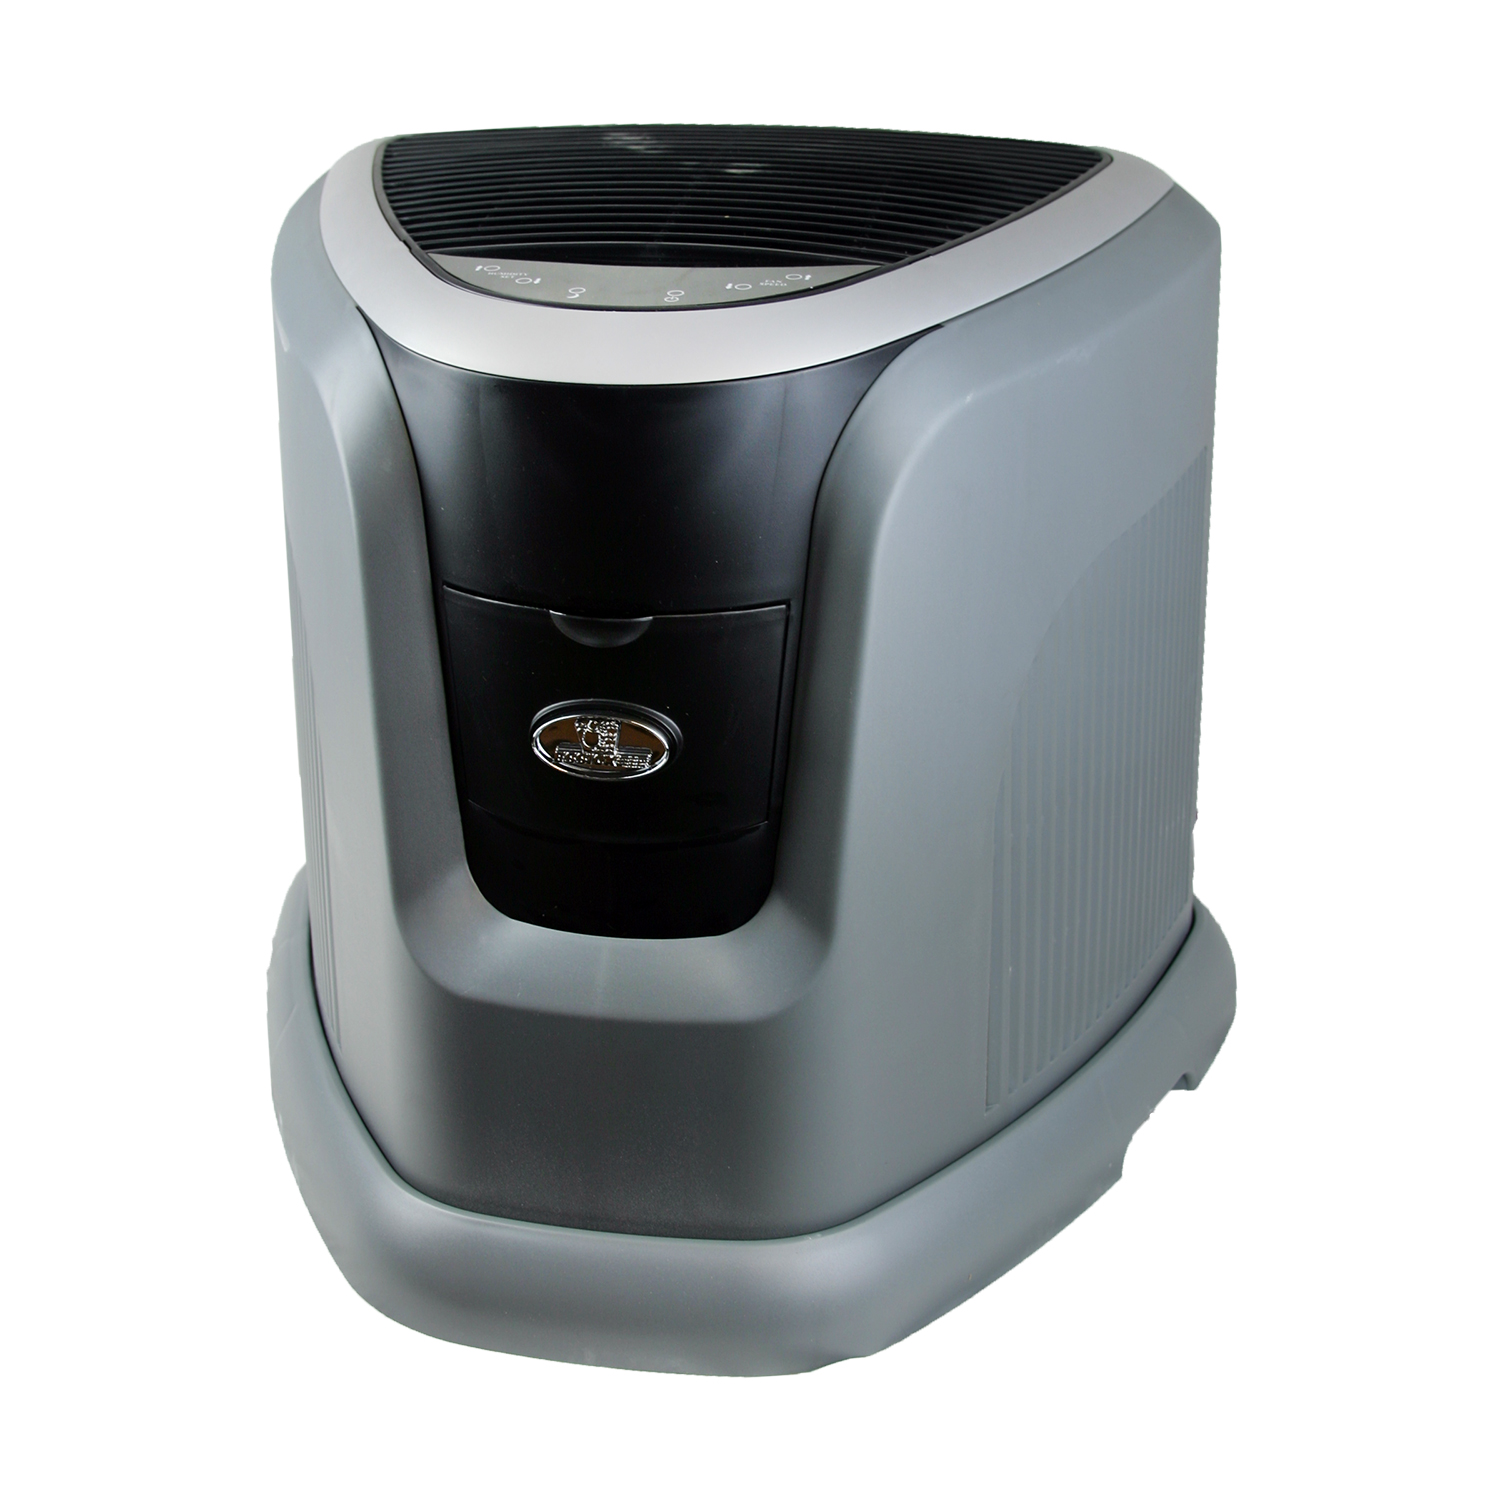 Ultrasonic Humidifiers VS Evaporative Humidifiers Which Are Better  #5A5A71